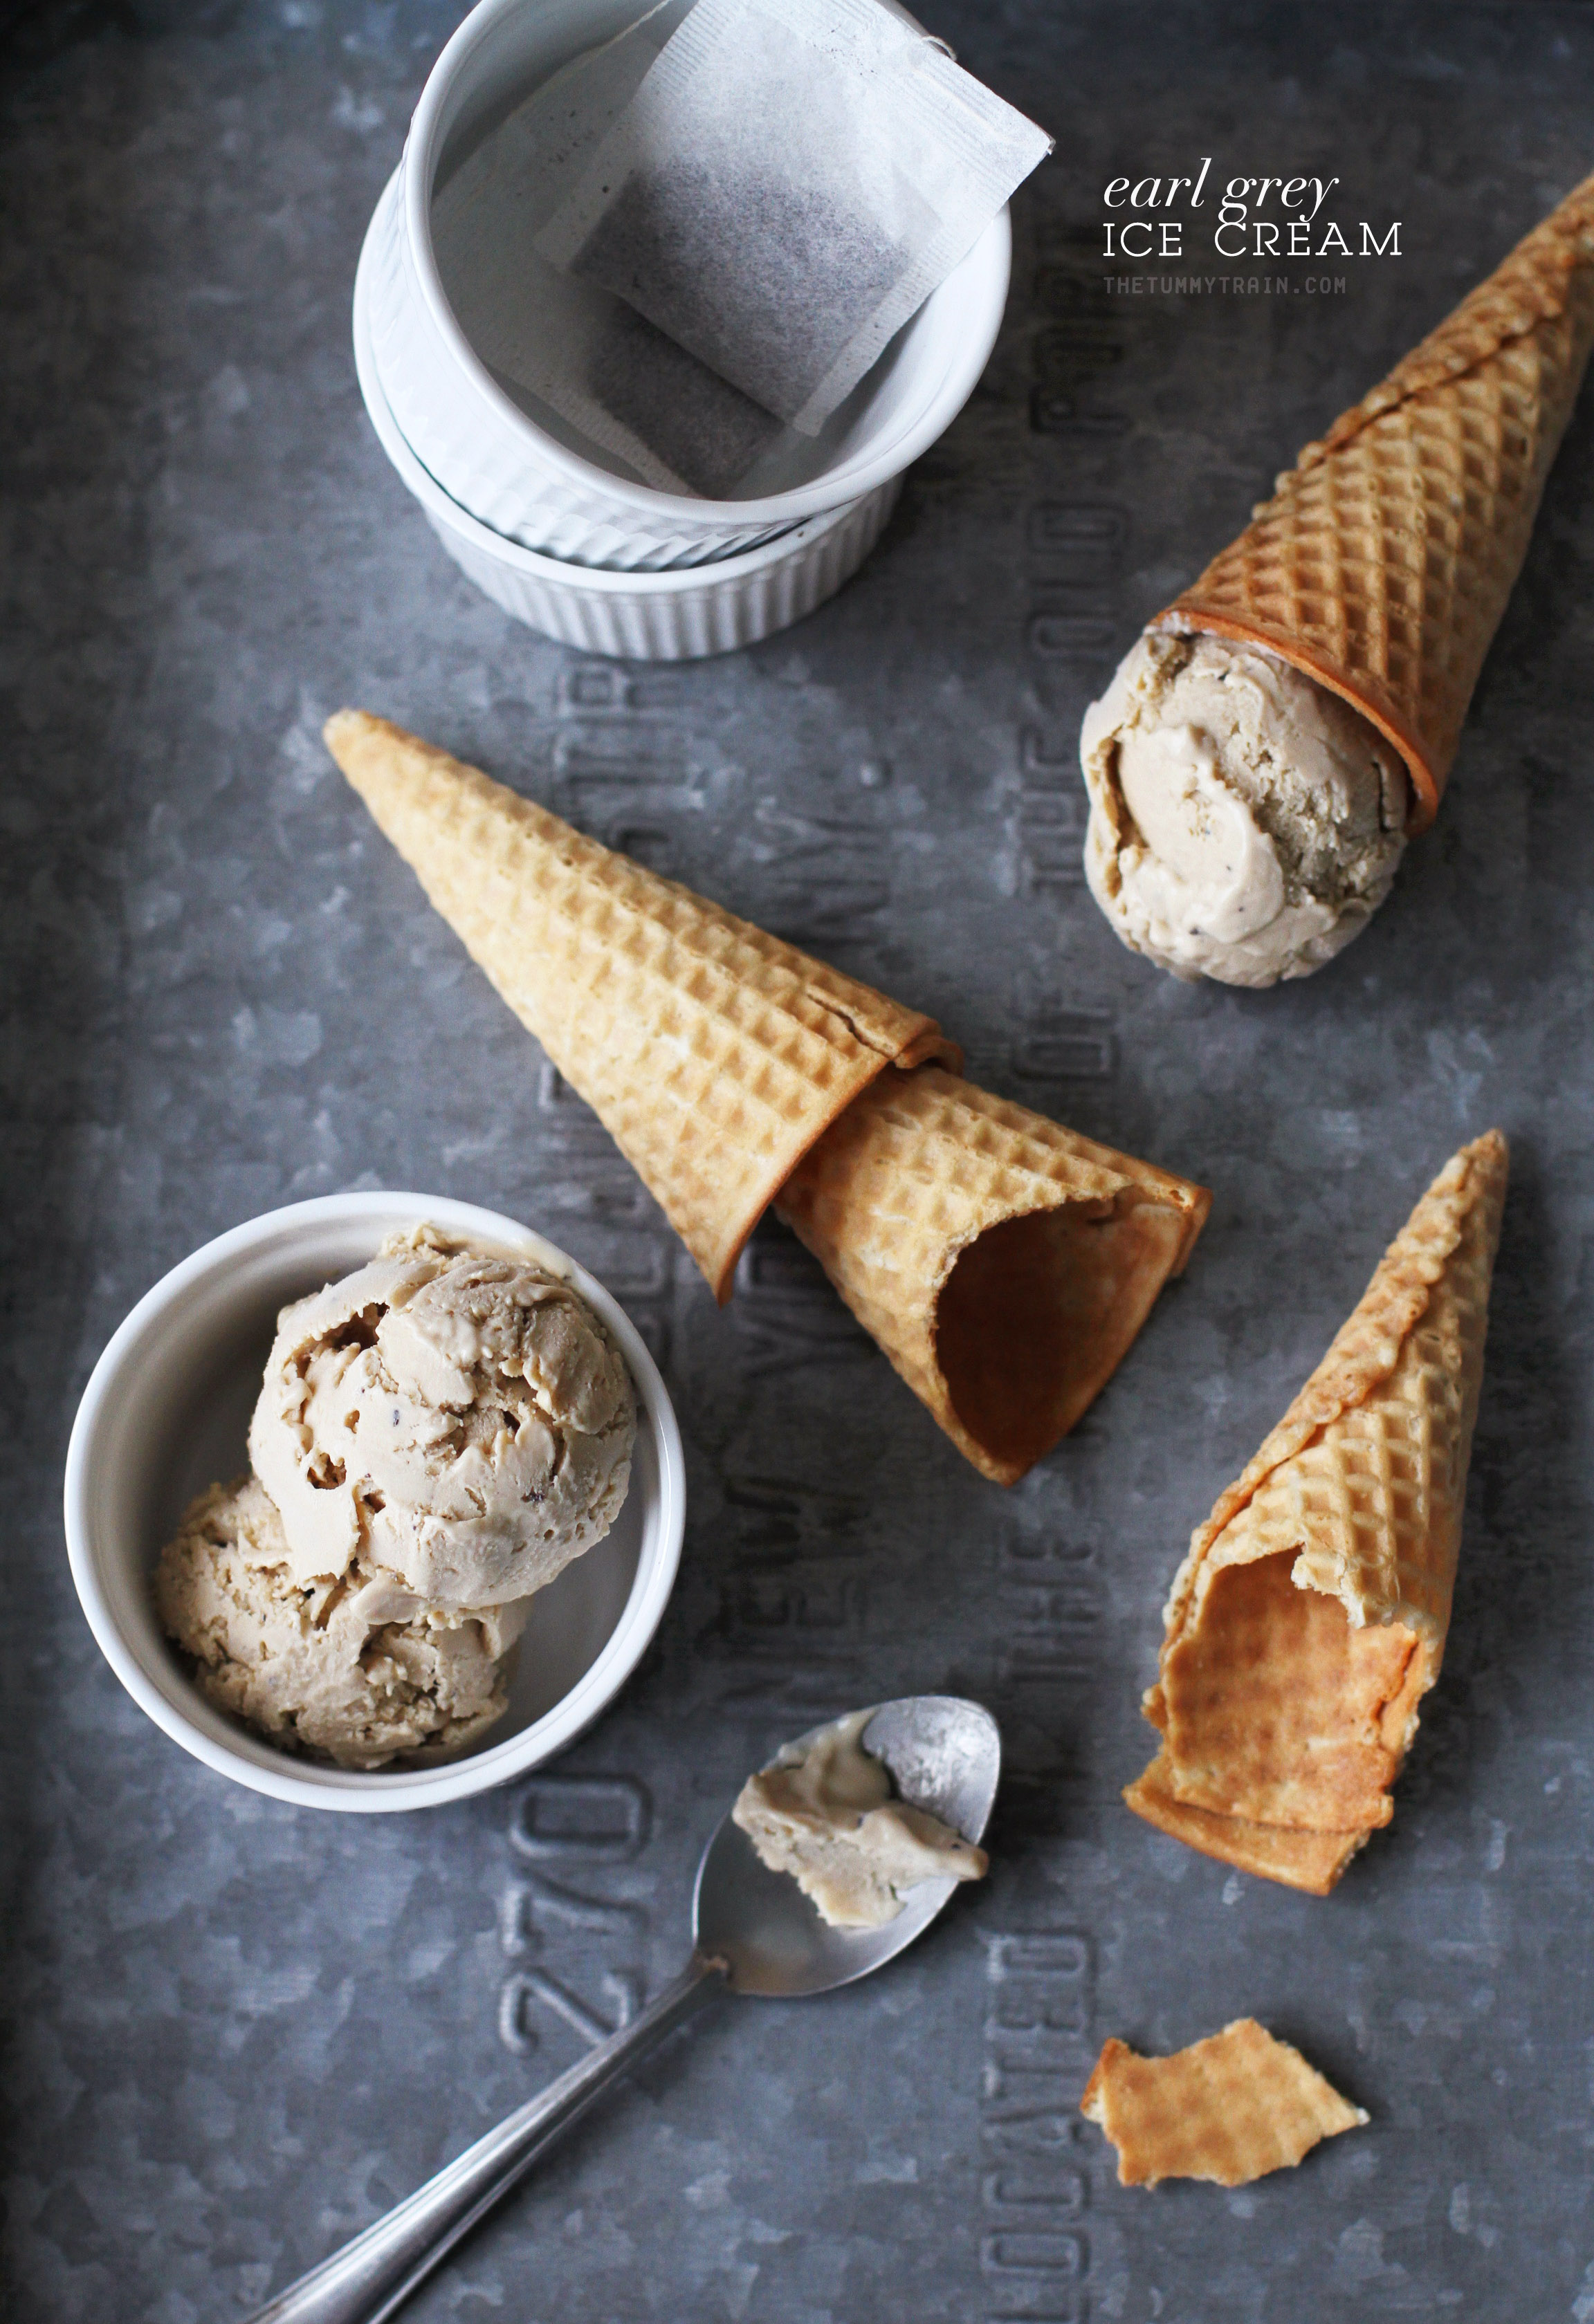 Earl Grey Ice Cream 1 - When the situation calls for an Earl Grey Ice Cream Recipe